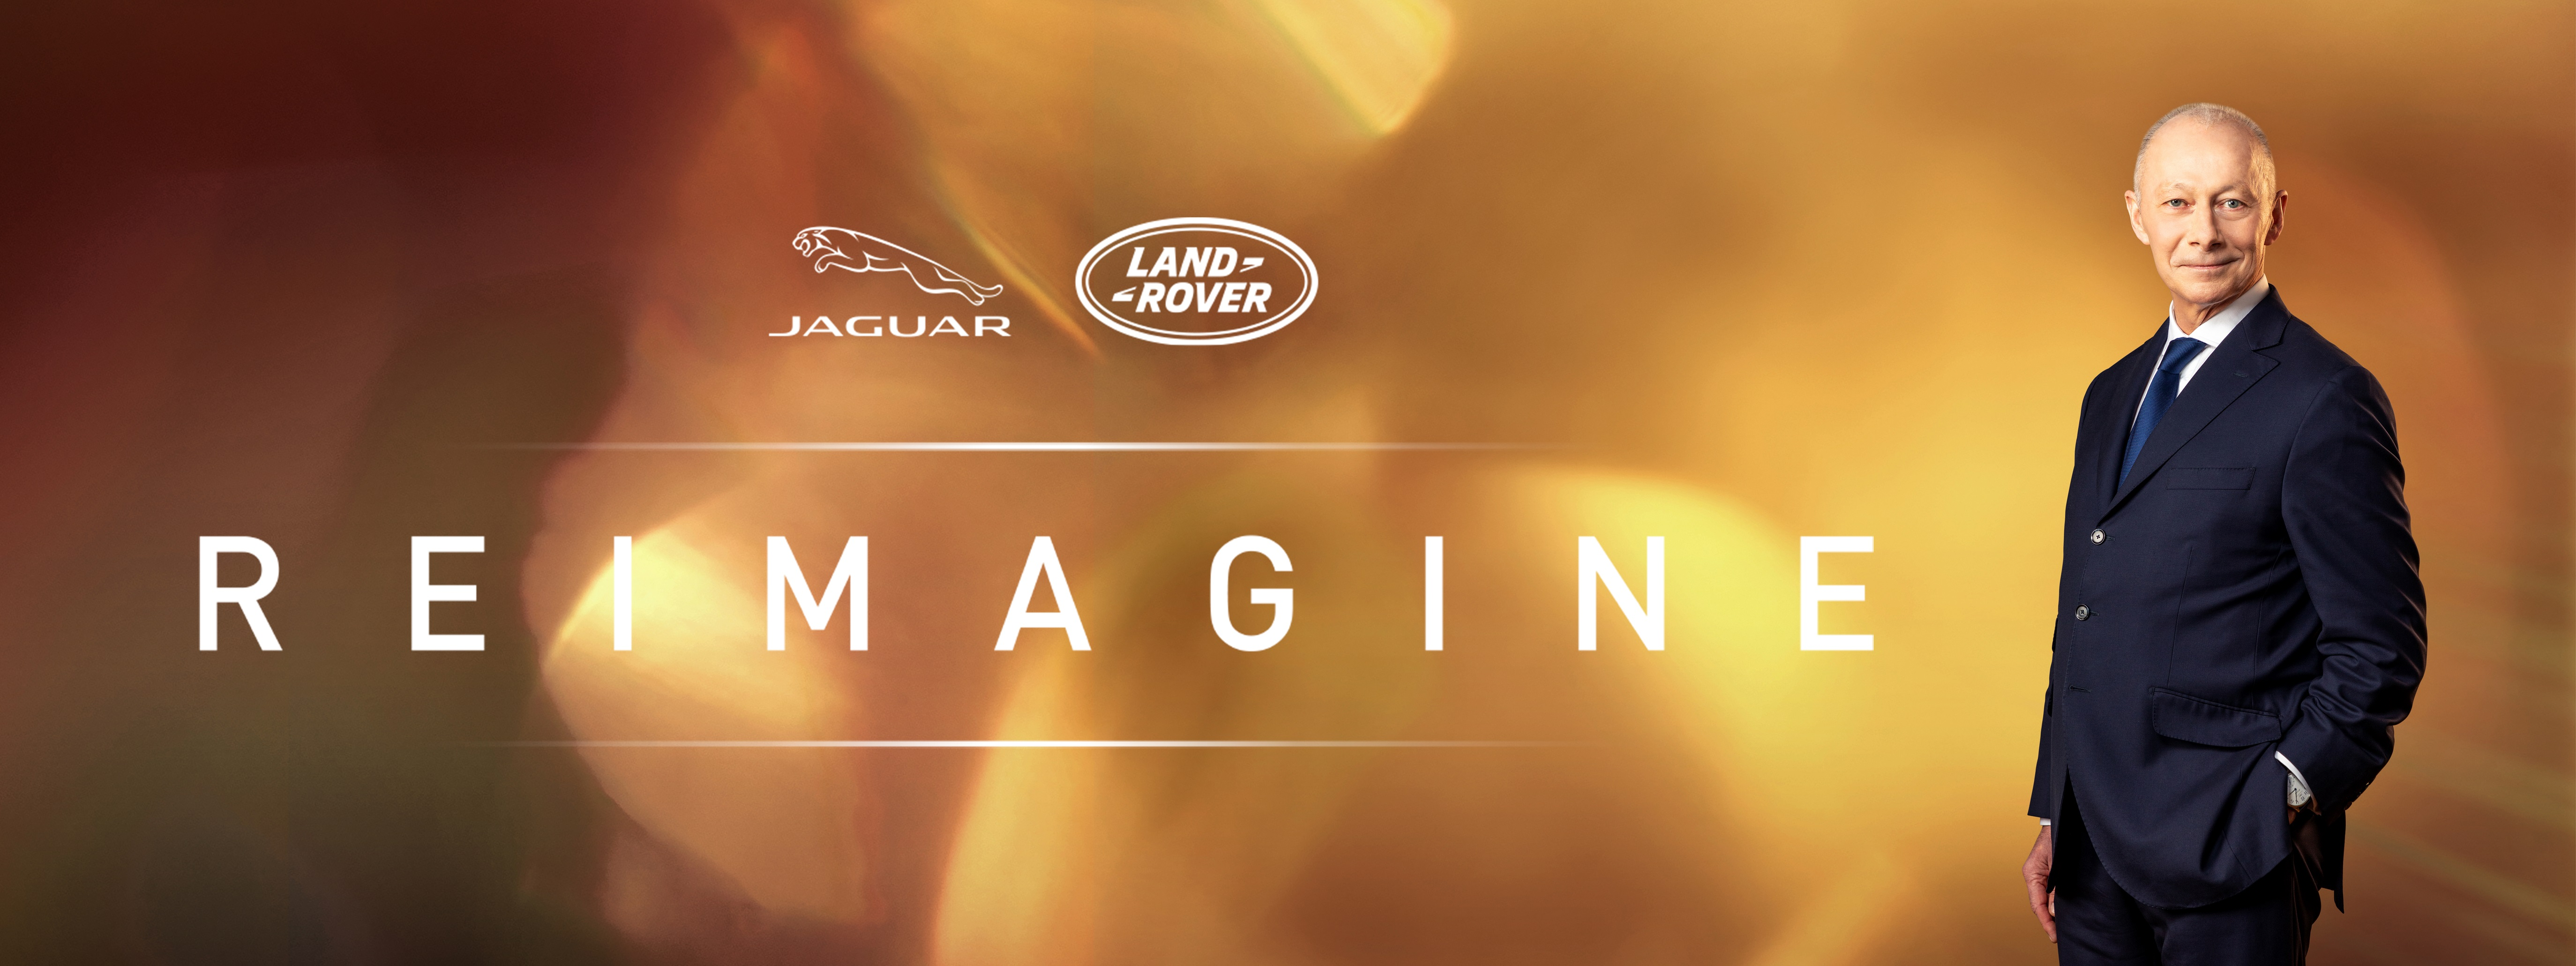 Jaguar Land Rover Reimagines The Future Of Modern Luxury By Design